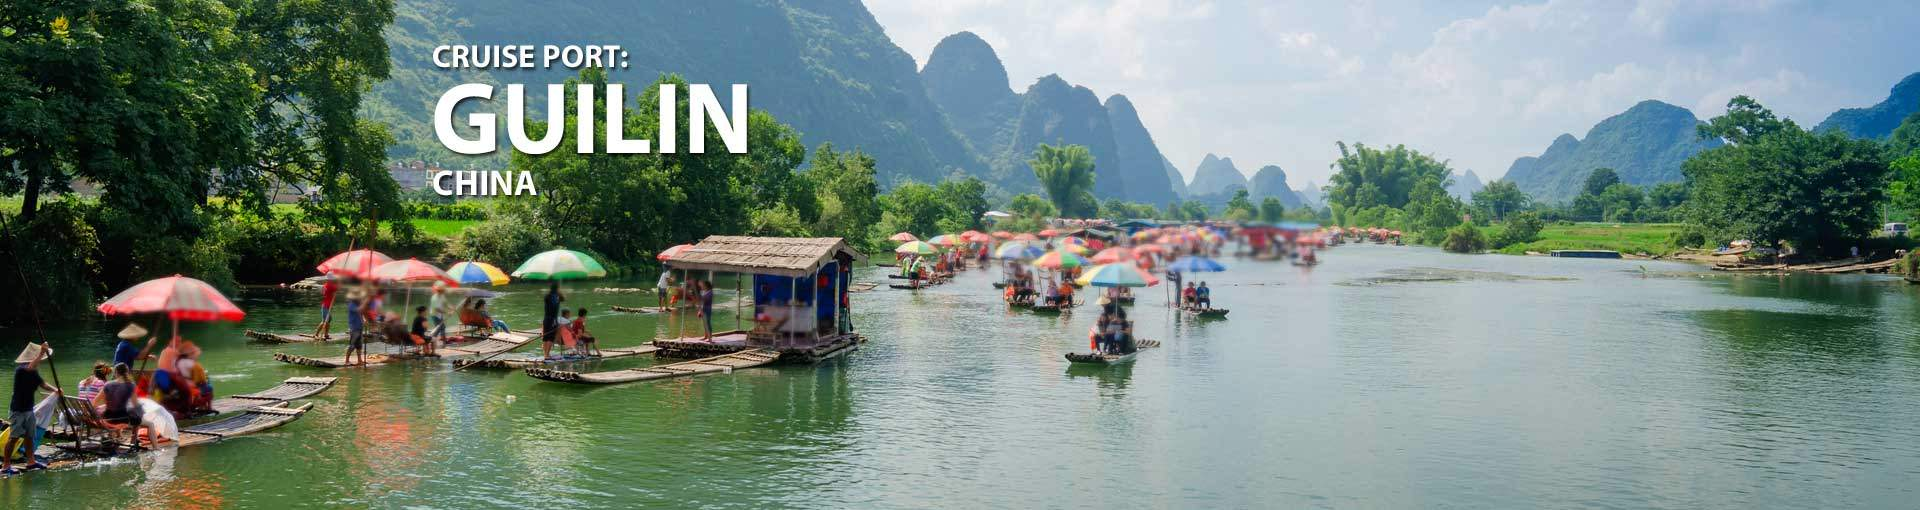 Cruises to Guilin, China